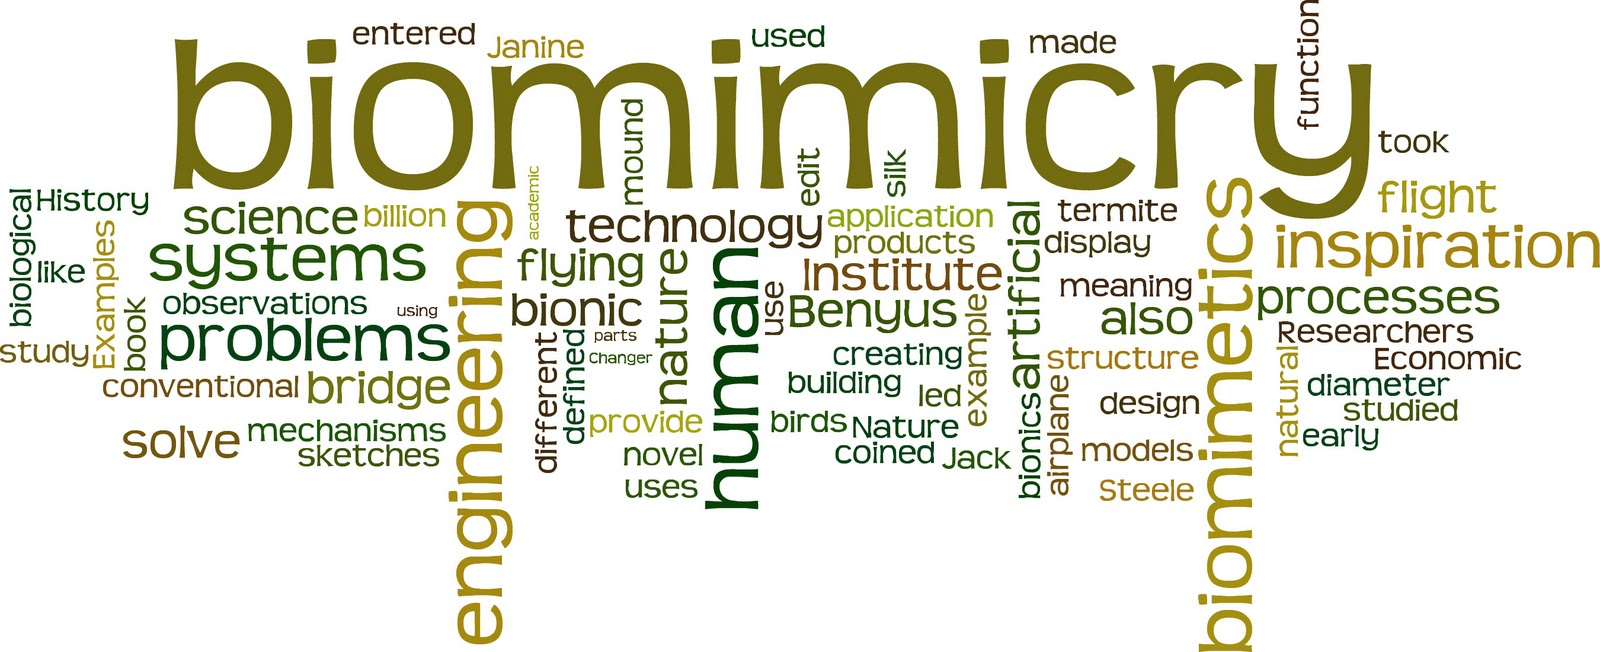 Biomimicry tag cloud